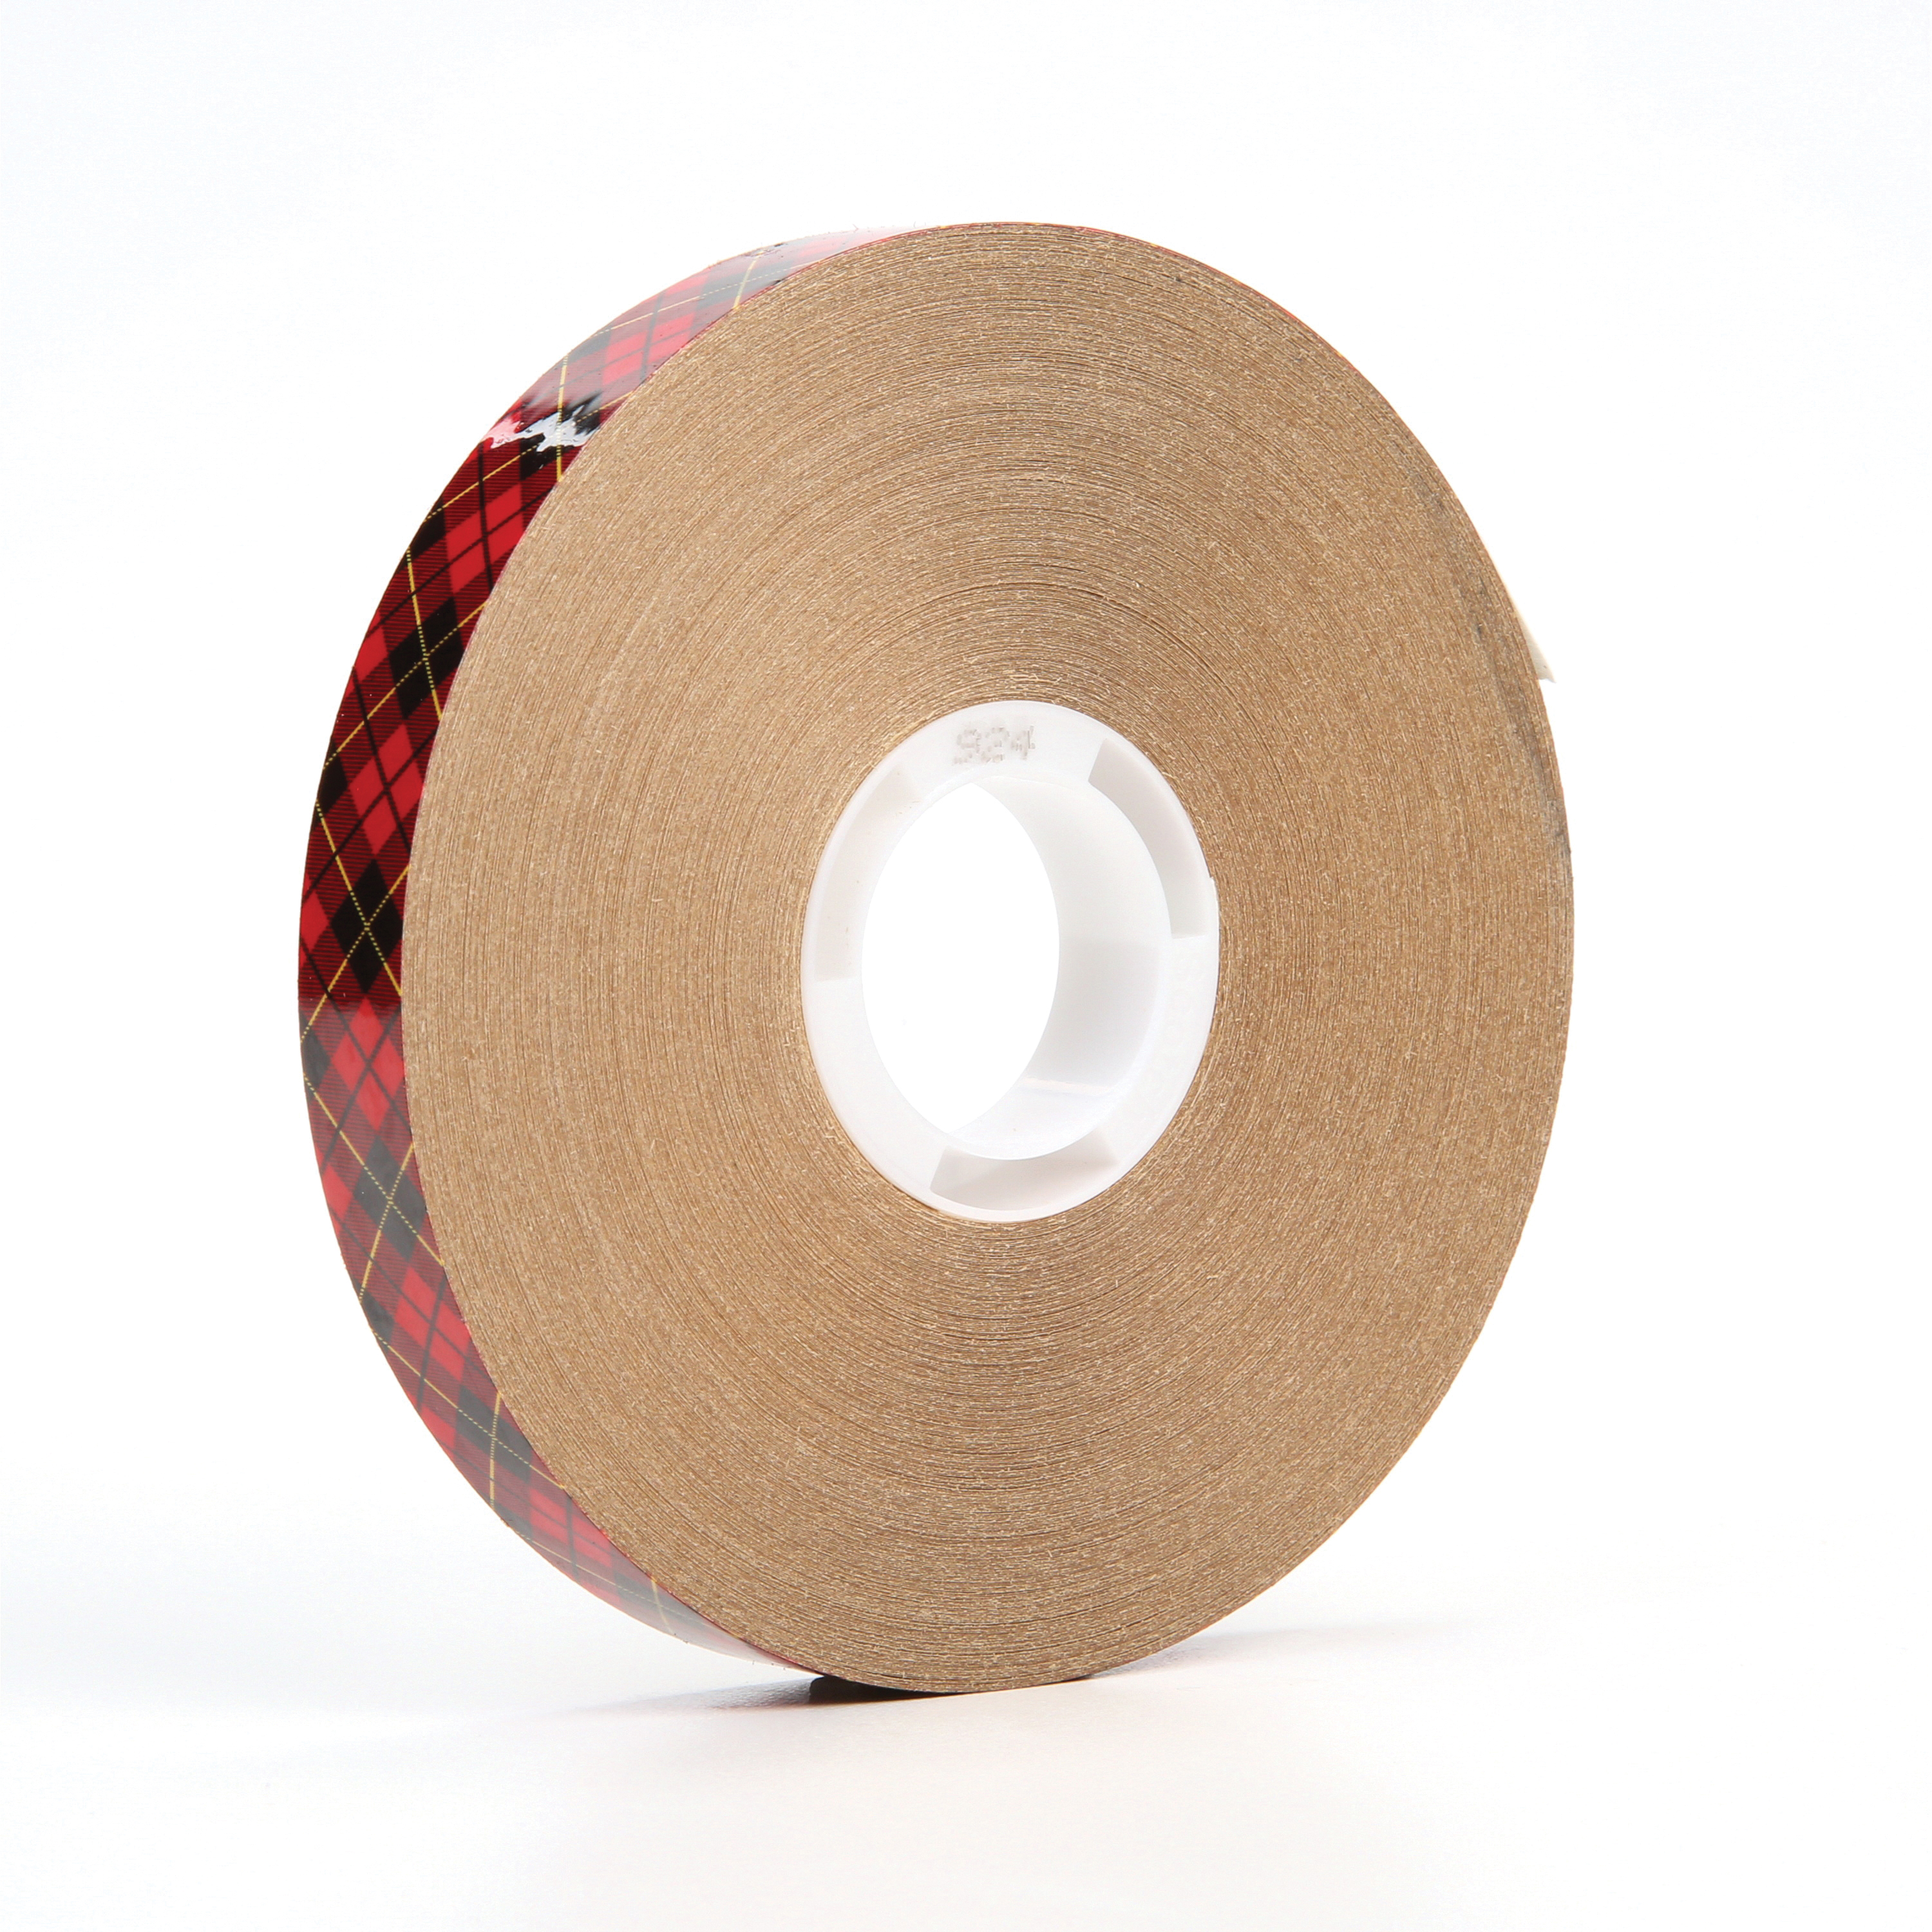 "3M™ 924-1/2""x60yd Adhesive Transfer Tape, 60 yd L x 1/2 in W, 2 mil THK, 2 mil 400 Acrylic Adhesive, Clear"